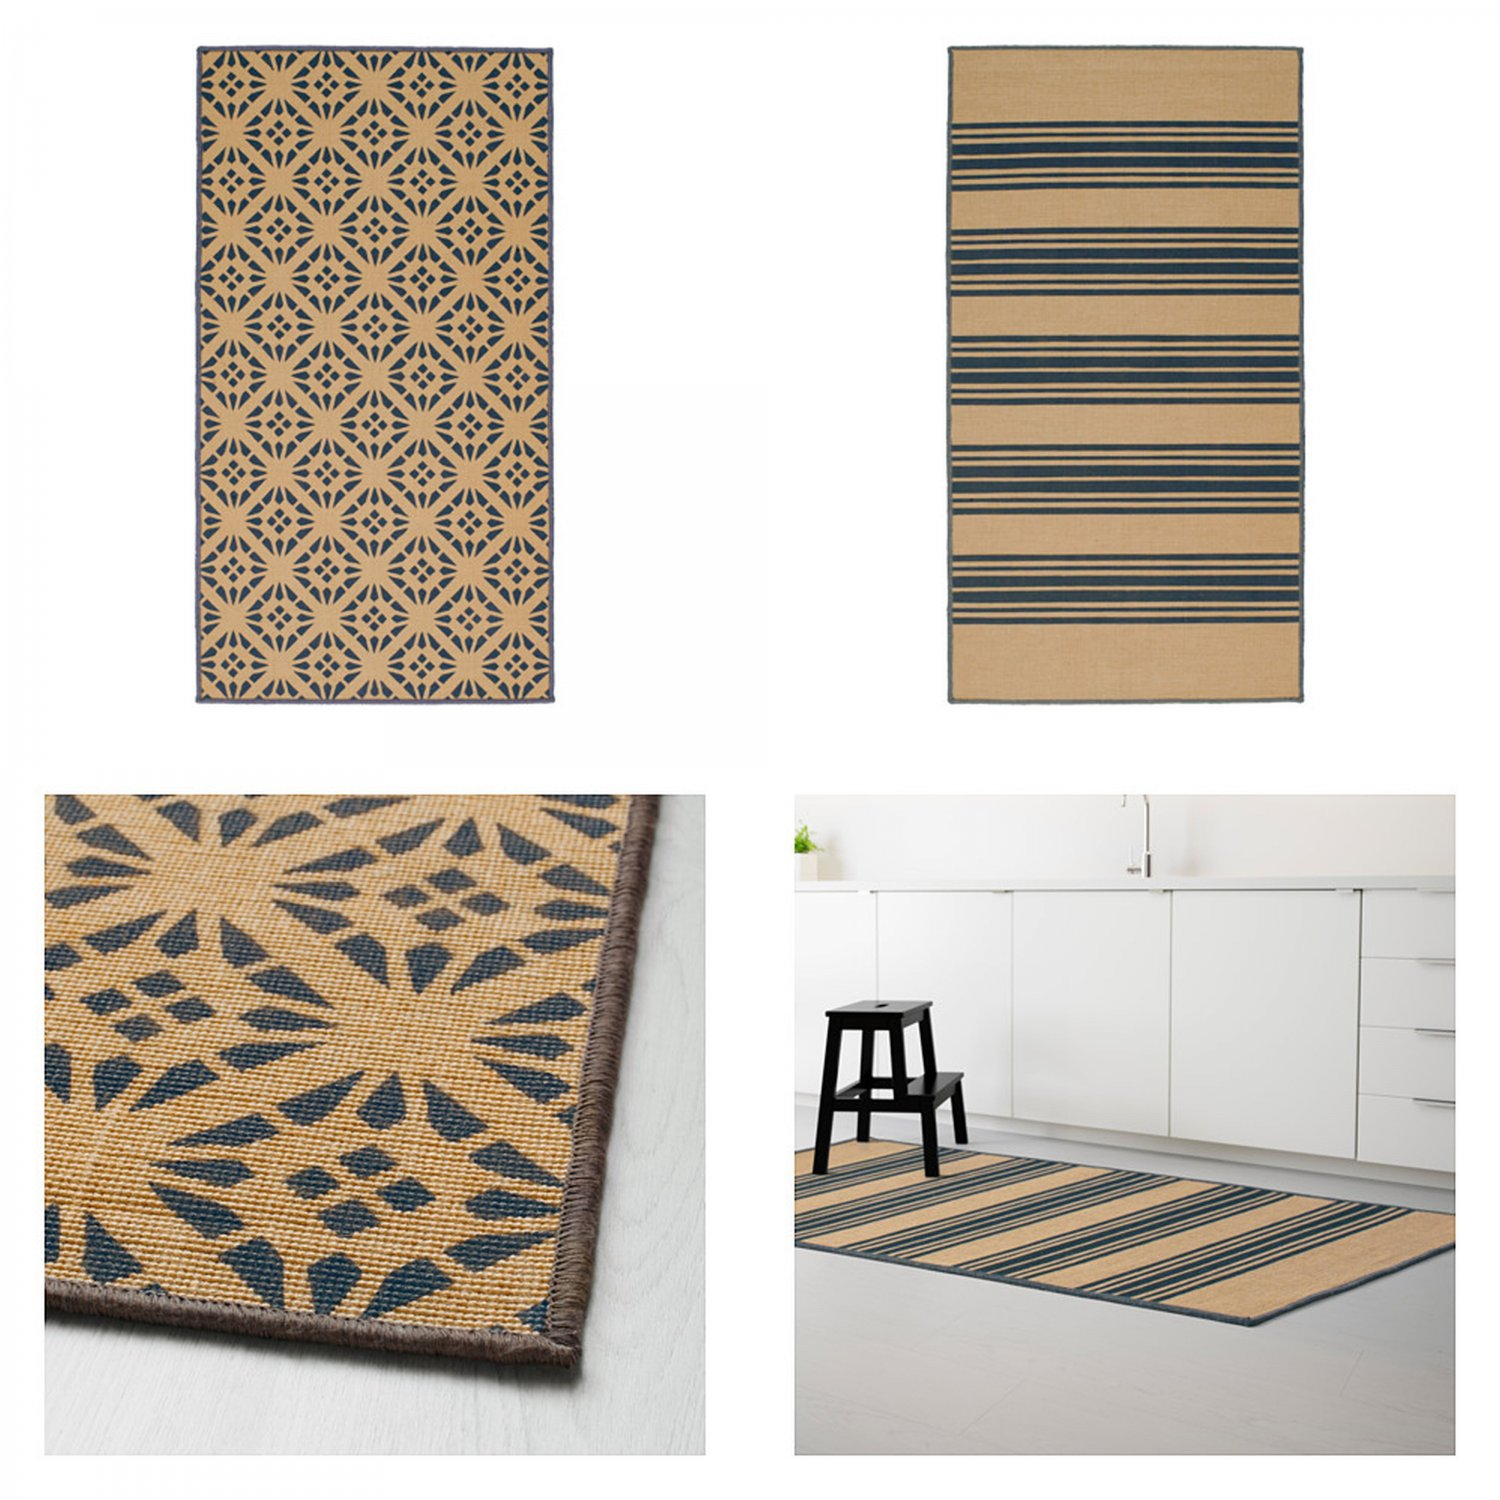 28 striped ikea rug ikea striped rugs flickr photo sharing